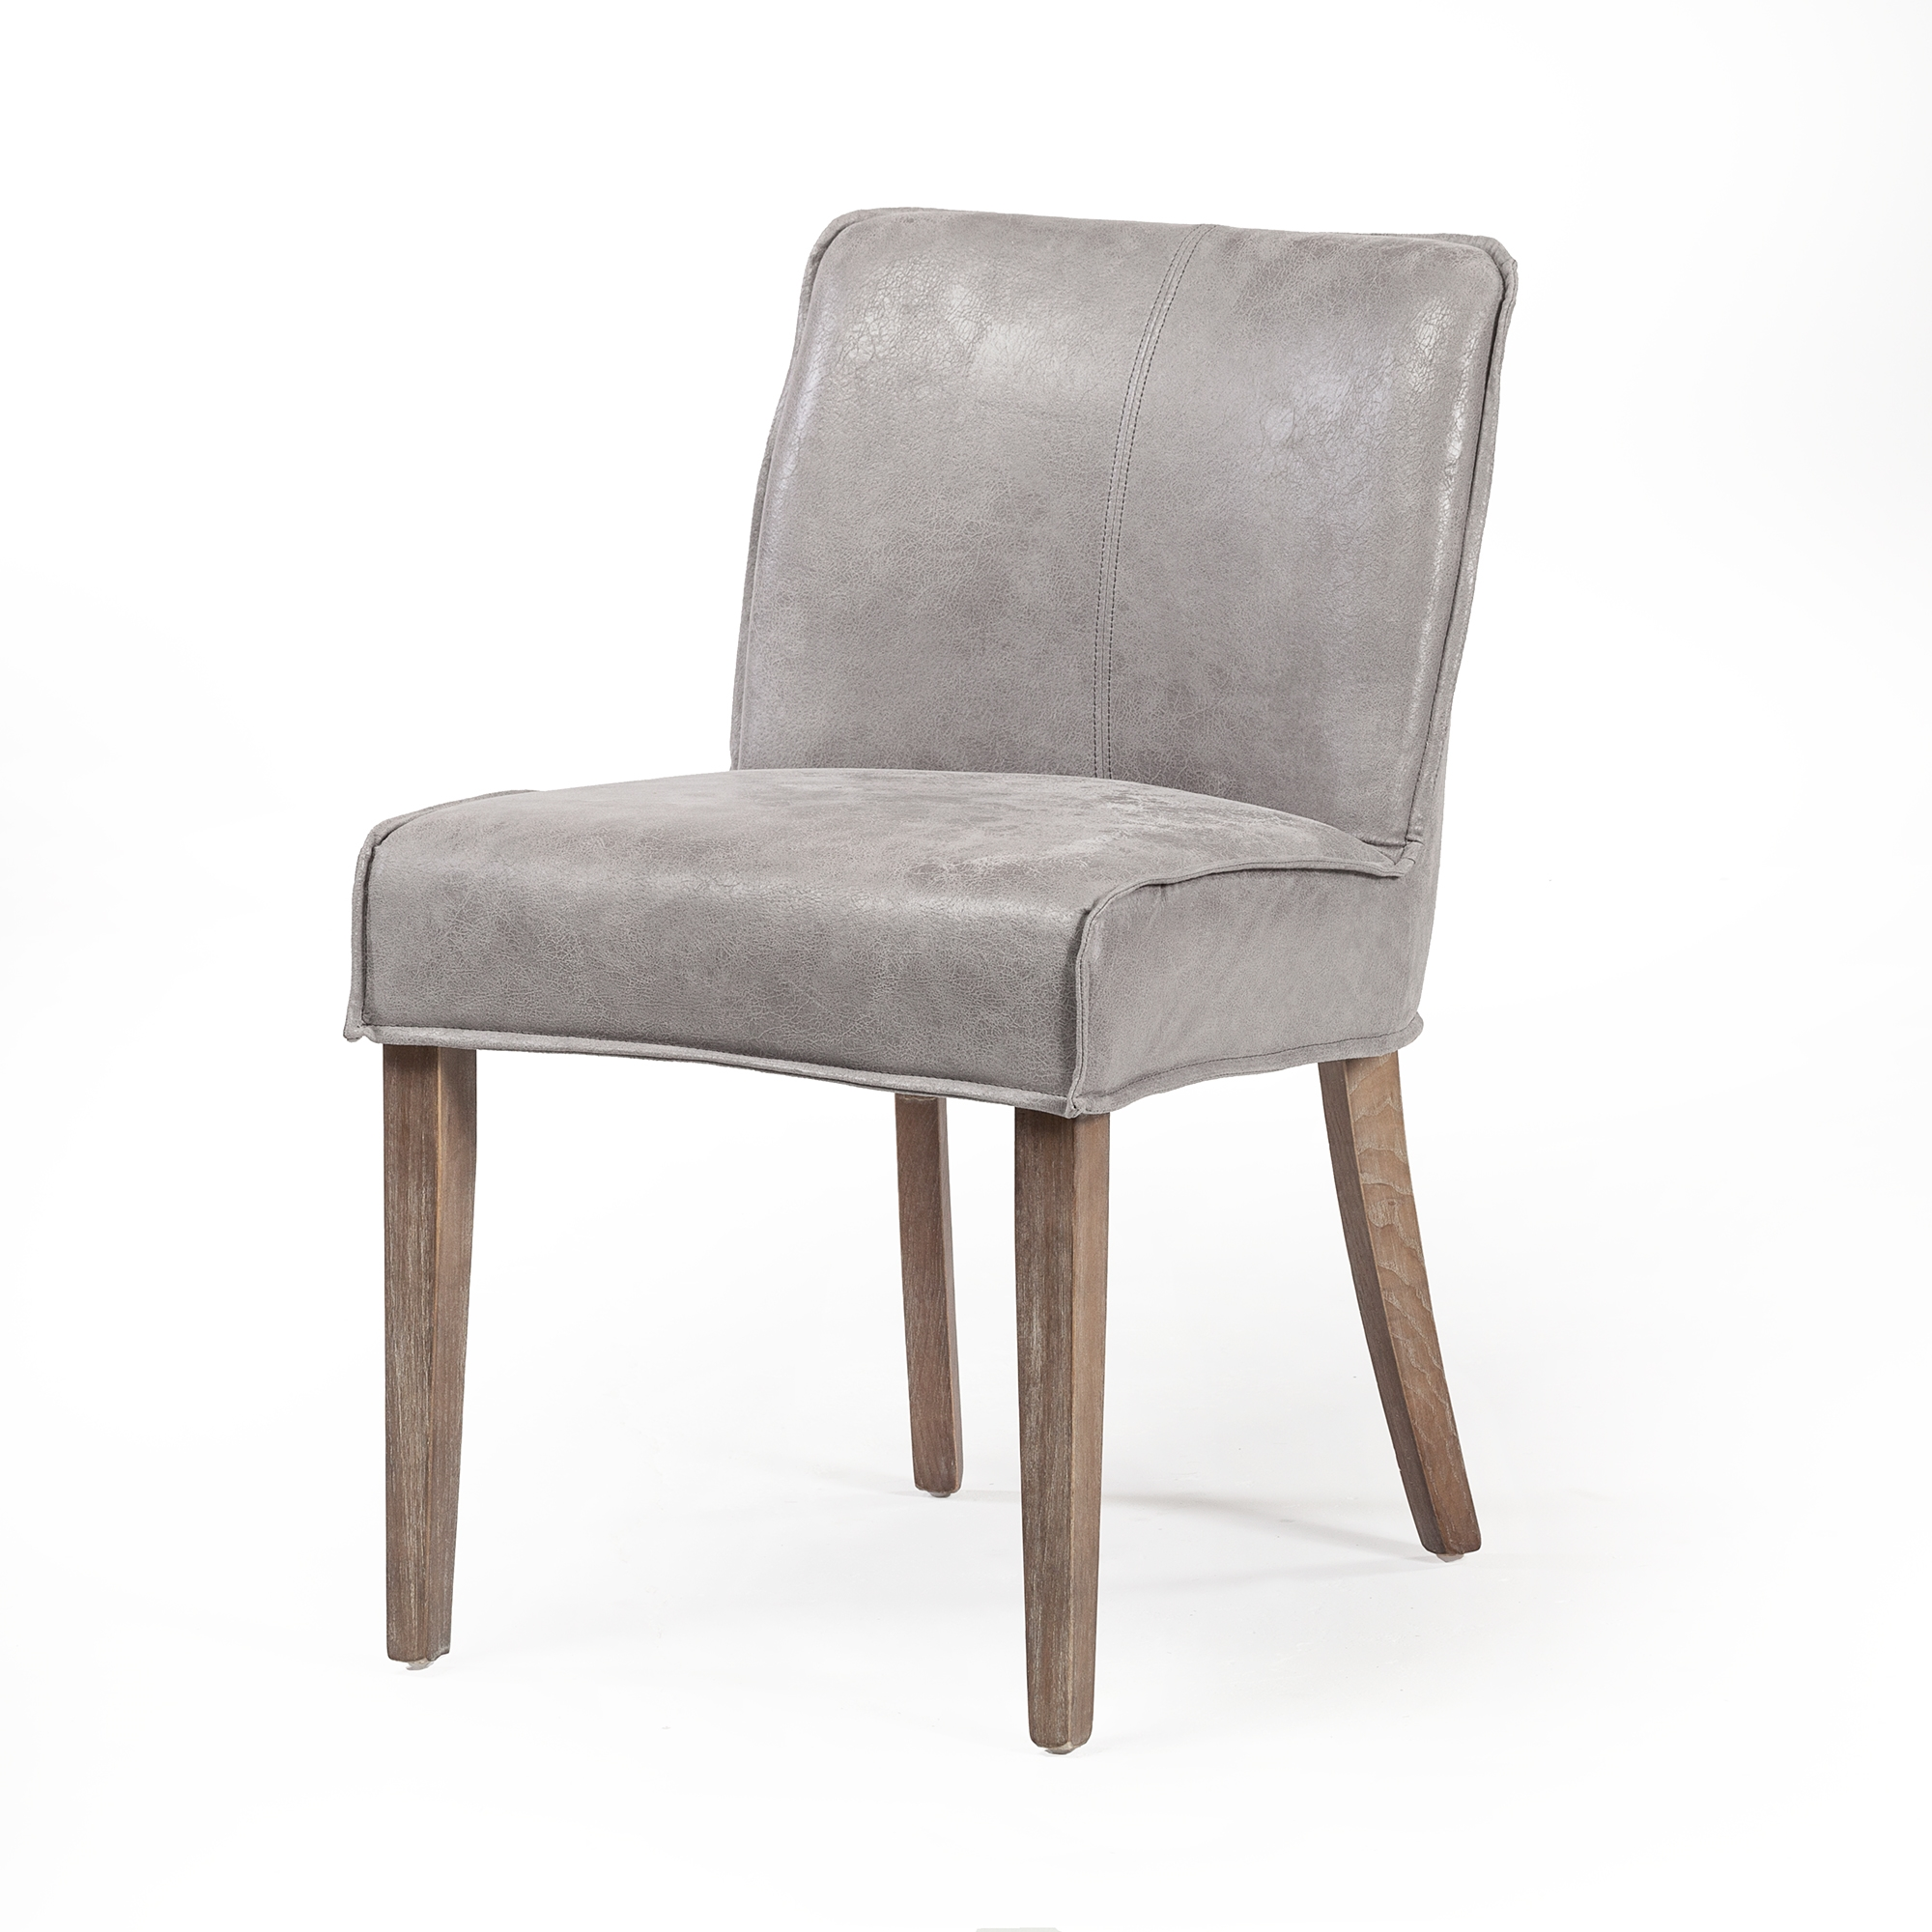 Swell Ariel Dining Chair In Distressed Grey Leather Gmtry Best Dining Table And Chair Ideas Images Gmtryco